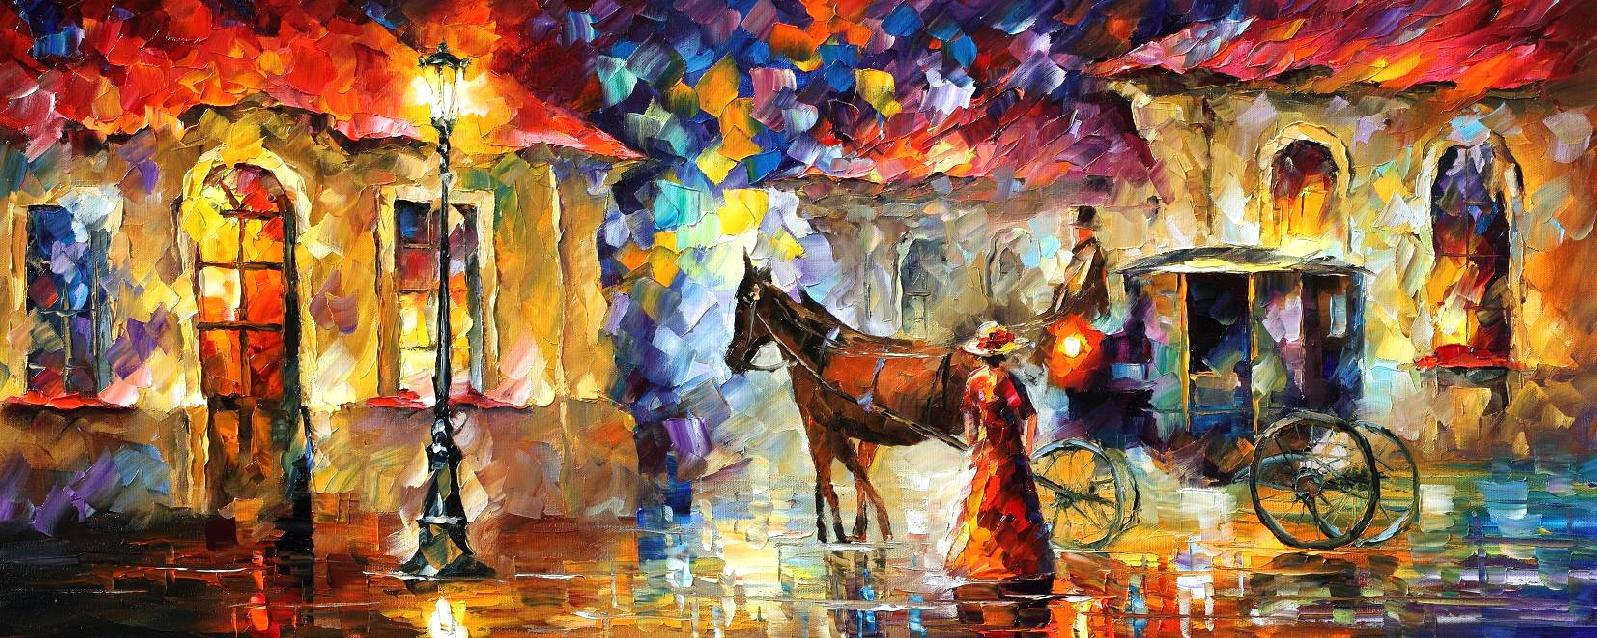 HORSES — PALETTE KNIFE Oil Painting On Canvas By Leonid Afremov